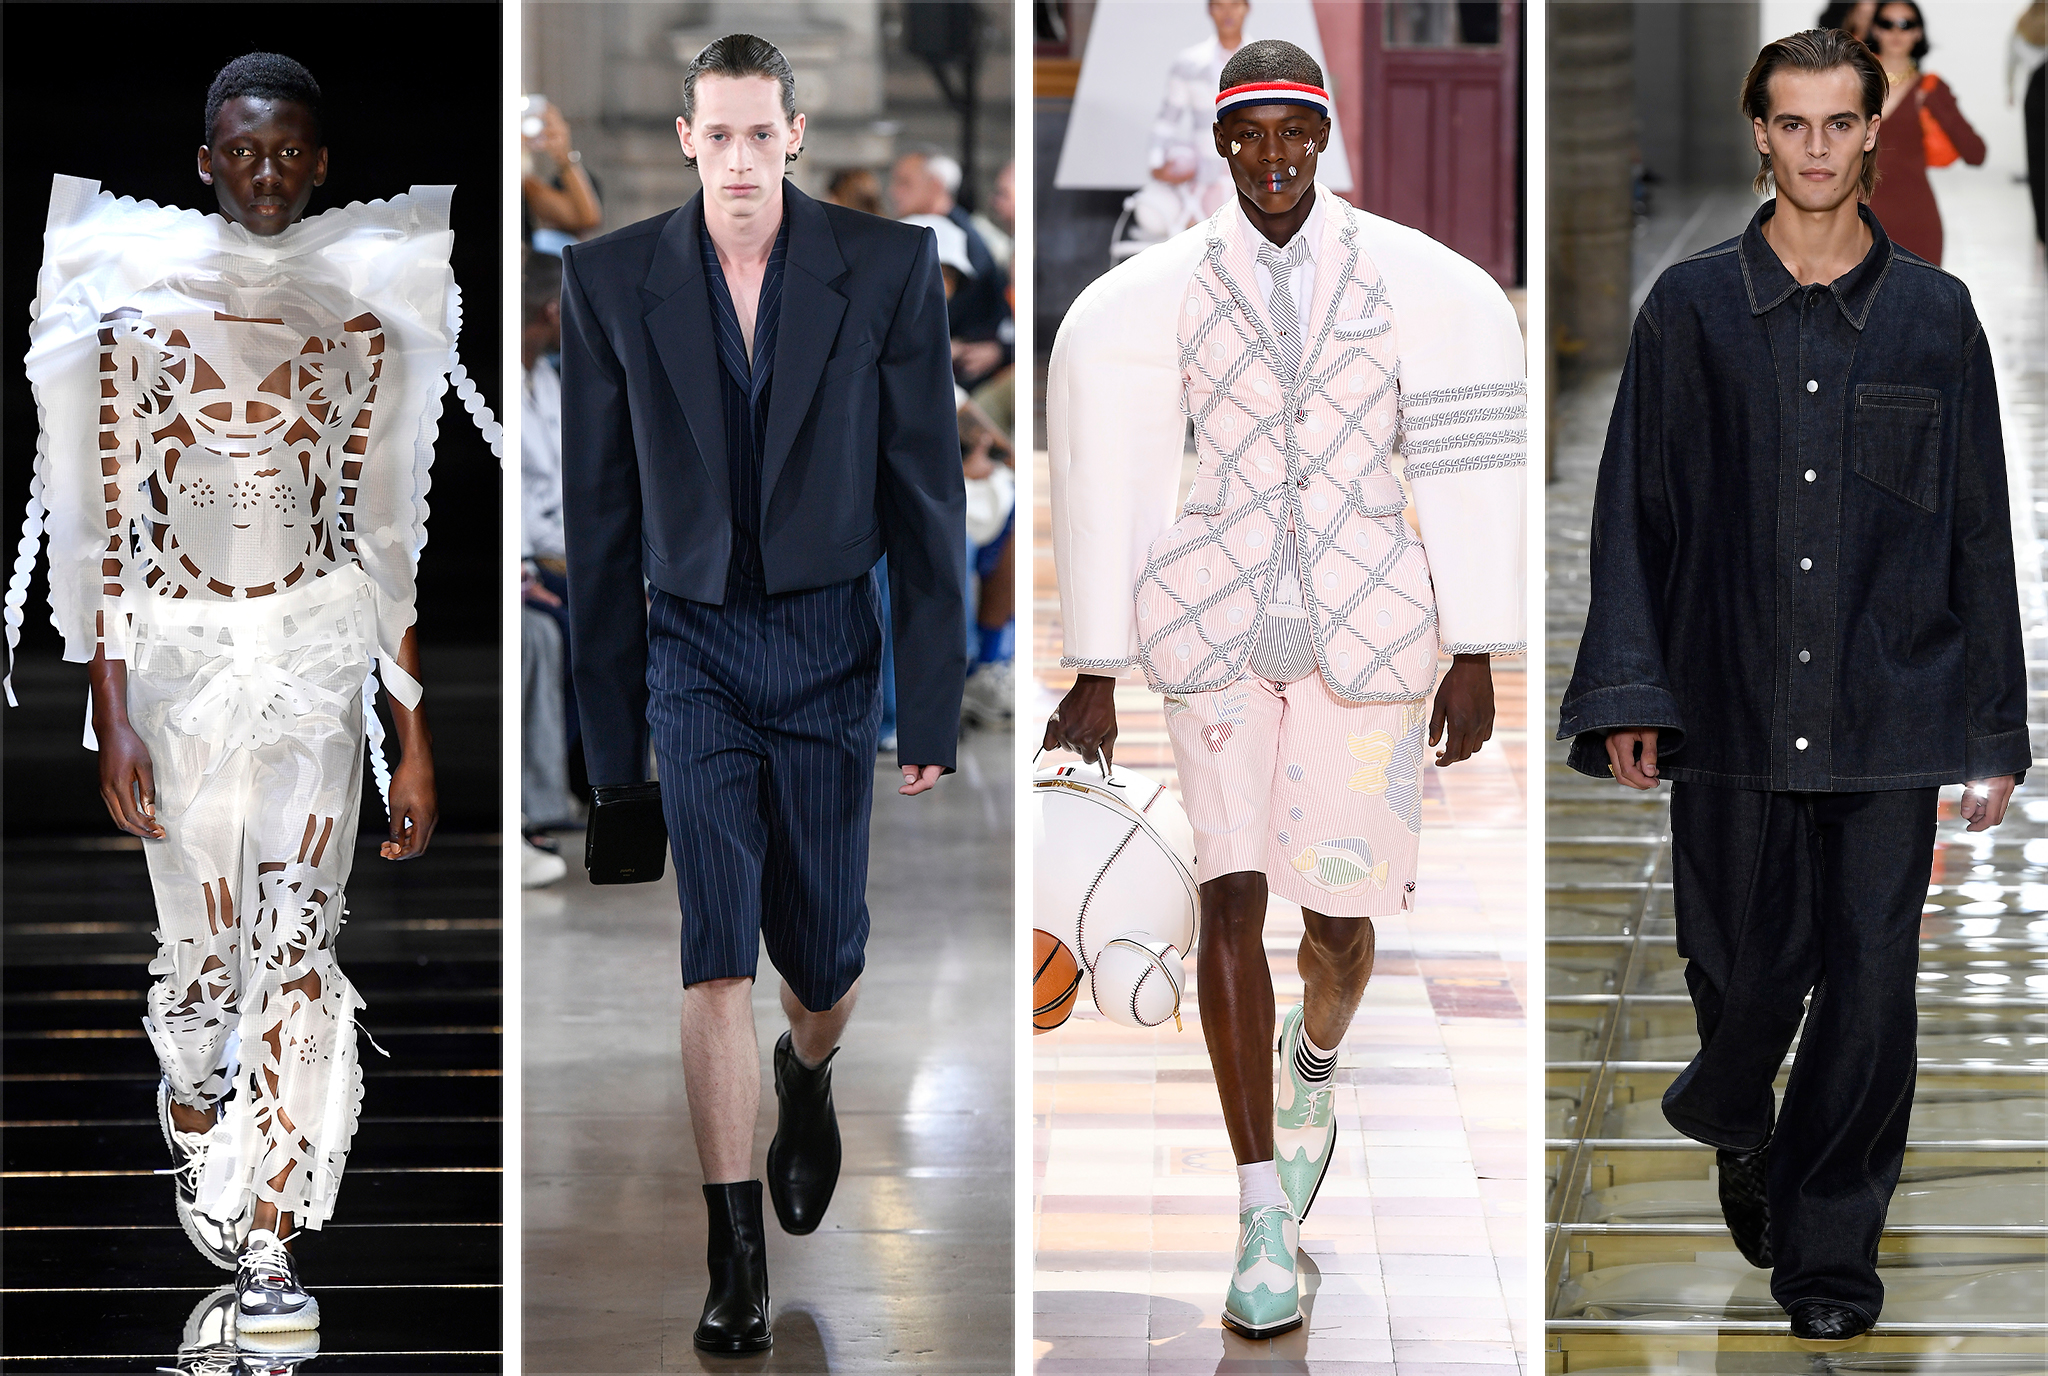 From Left: Craig Green, Juun.J, Thom Browne, and Bottega Veneta